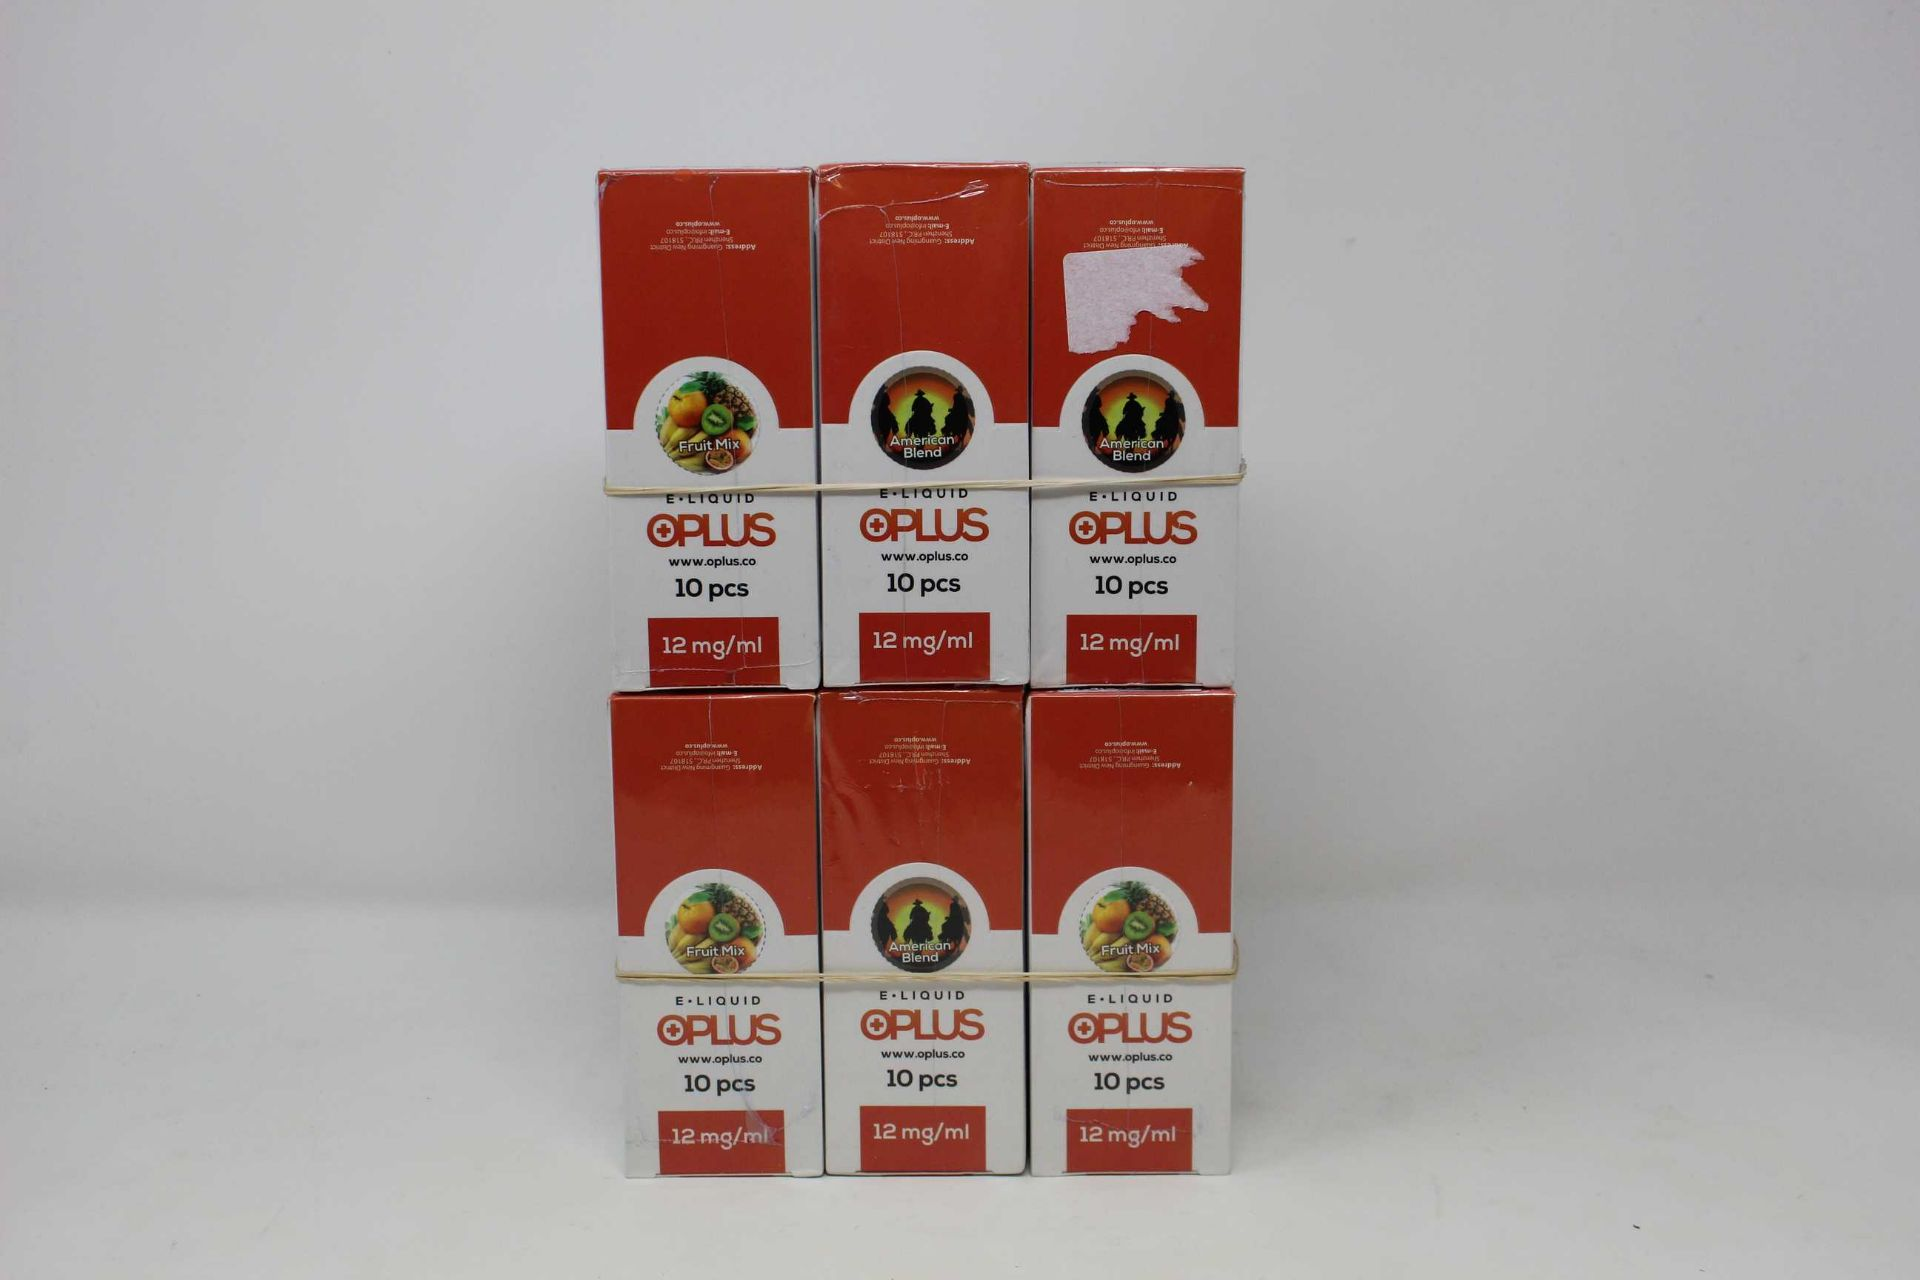 Six boxes of ten (10ml) OPLus E-Liquid in Fruit Mix and American Blend 12mg/ml (Over 18s only).